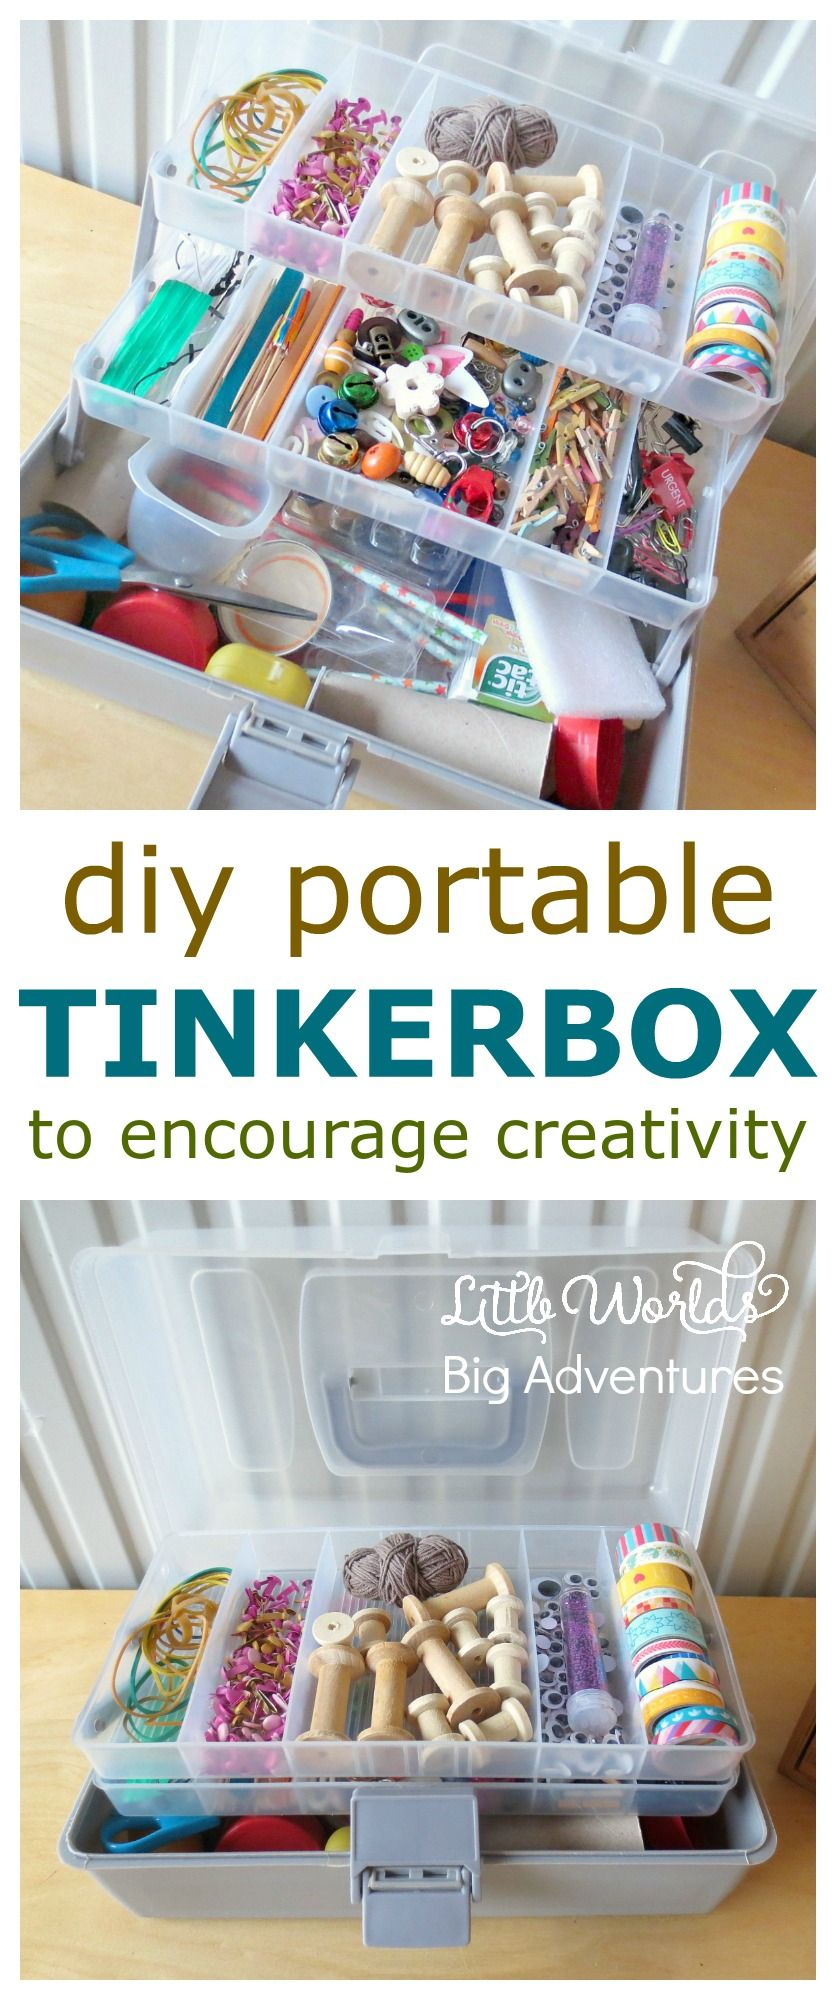 How to Put Together a Portable Tinker Box for Creative Play | Little Worlds Big Adventures